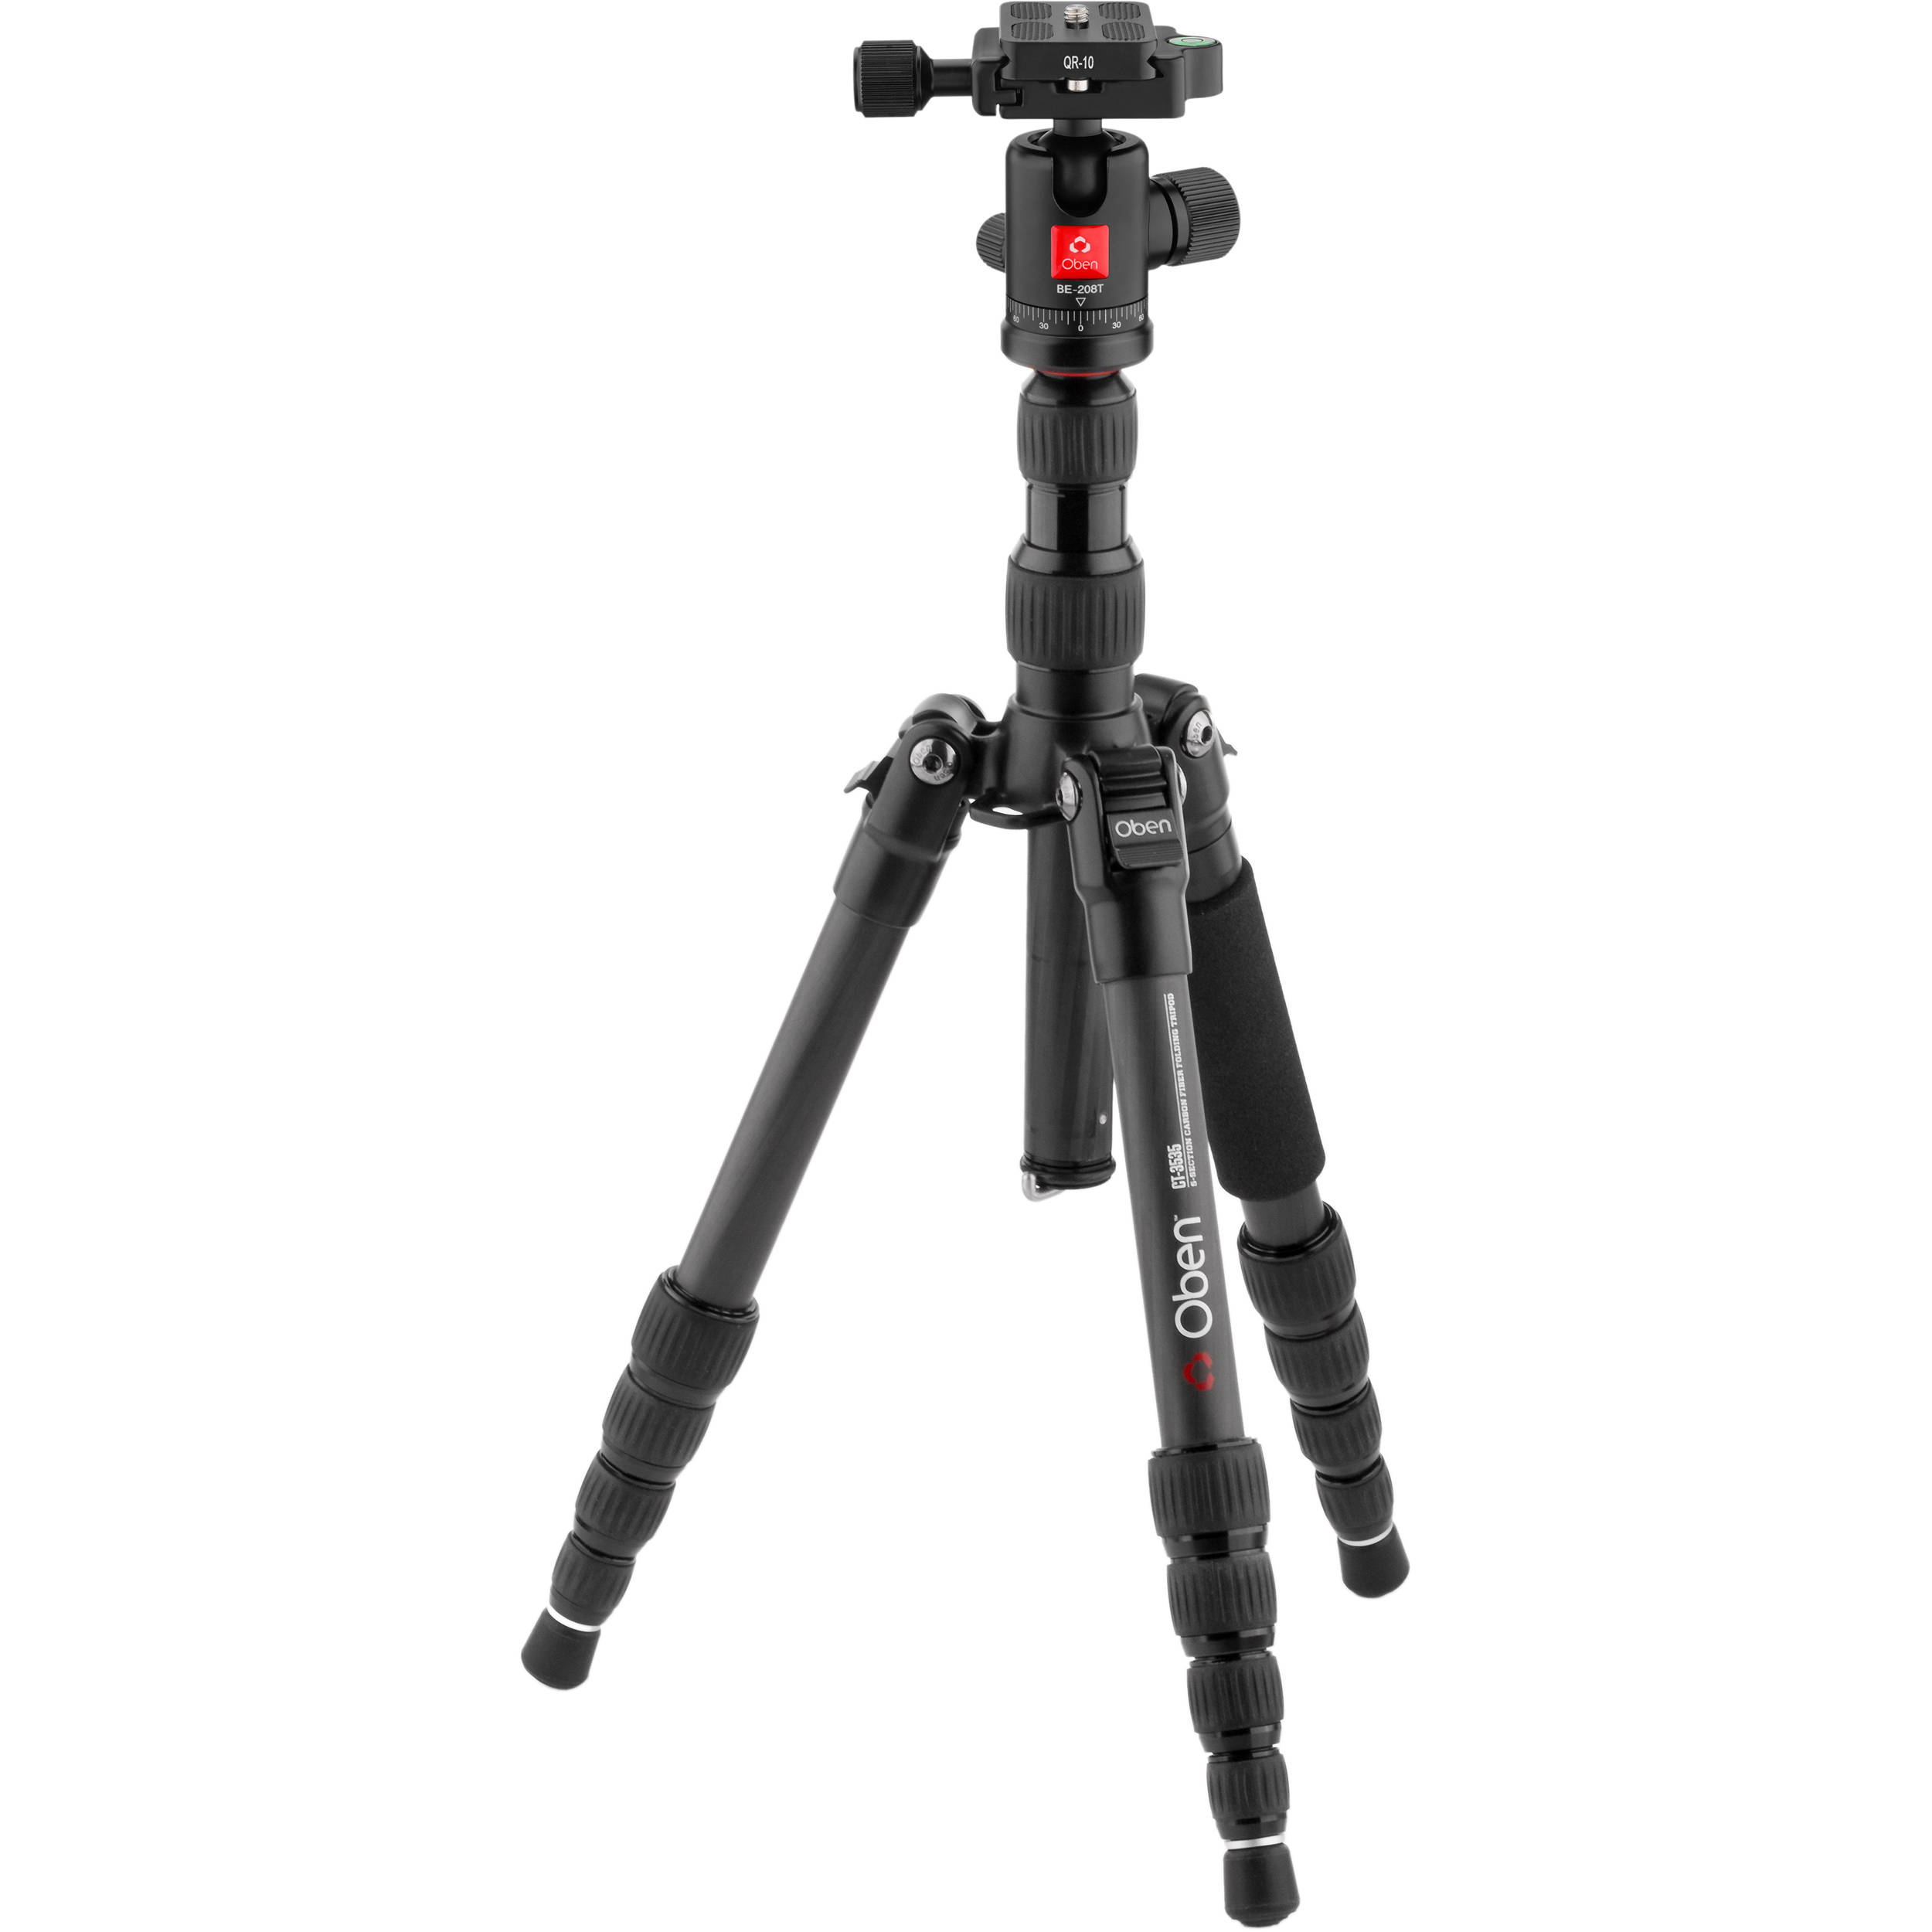 Photography Tripods Support Bh Photo Video Weifeng Portable Tripod Stand 4 Section Aluminium Legs With Brace Oben Ct 3535 Folding Carbon Fiber Travel Be 208t Ball Head